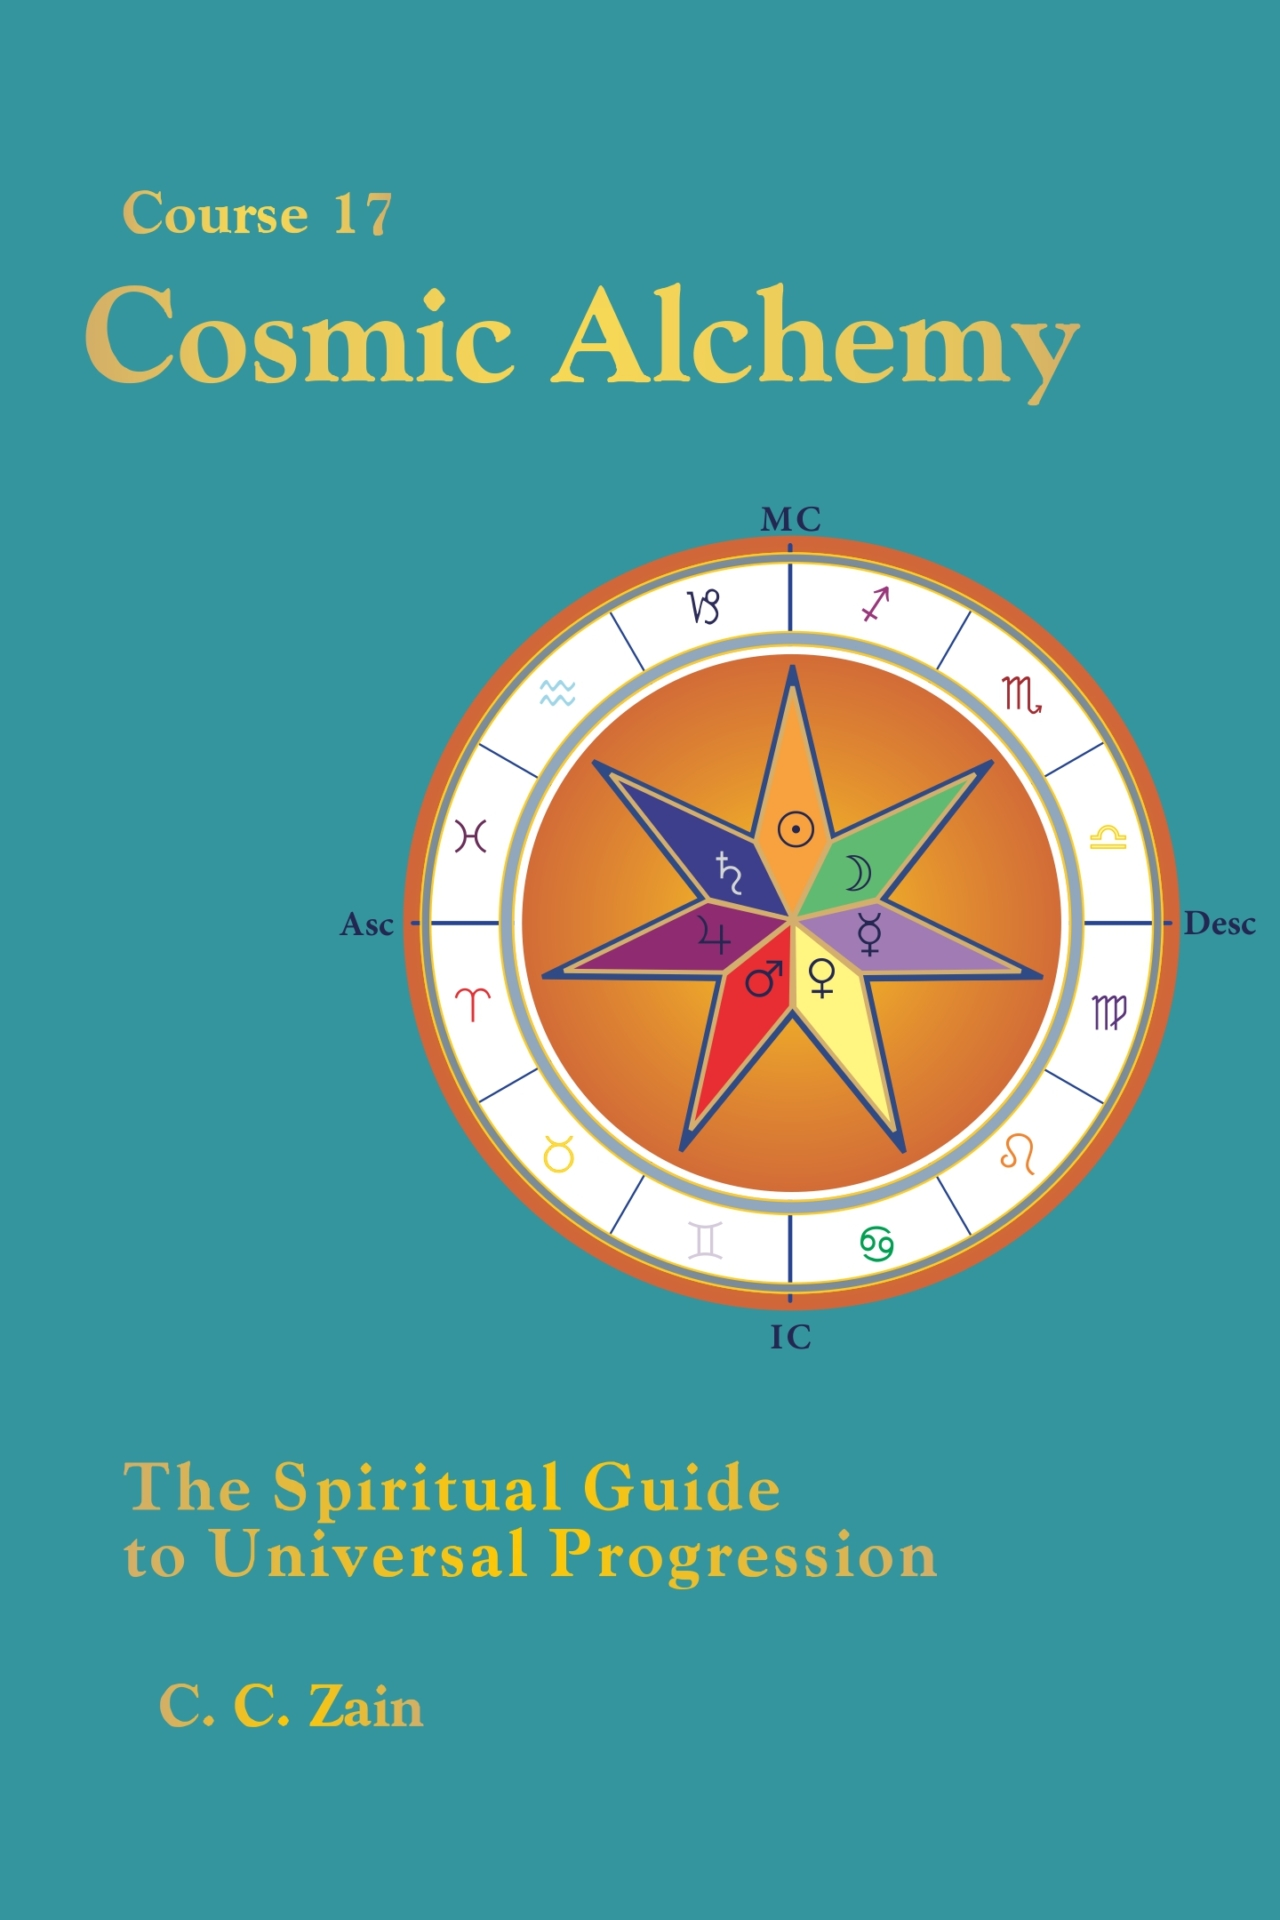 https://study.academyofhermeticarts.org/wp-content/uploads/2020/04/17_Cosmic_Alchemy_eBook_Cover-1280x1920.jpg